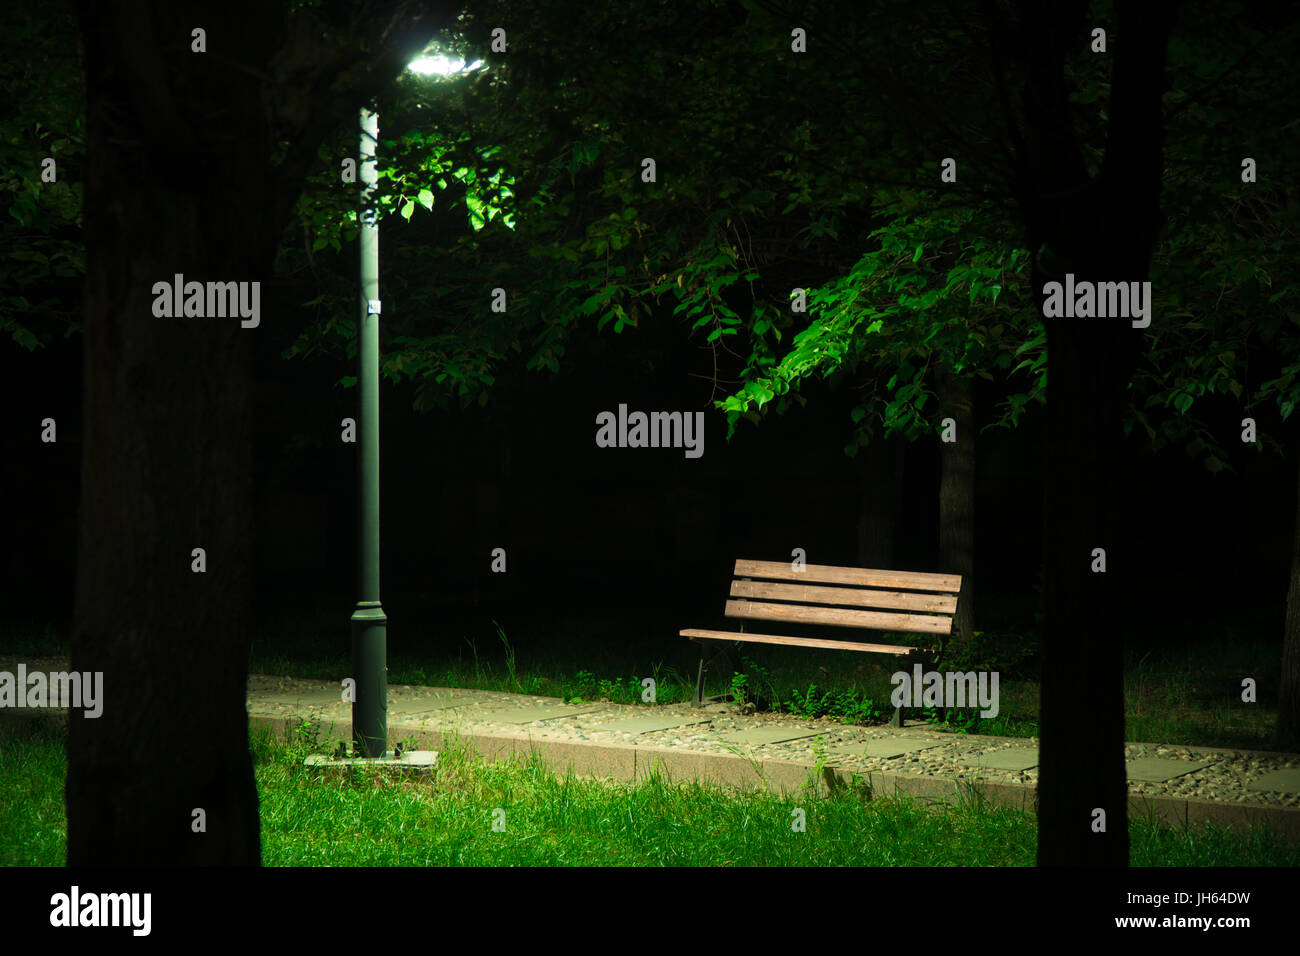 The light from a lamppost shinning onto a wooden bench and the surrounding grass with two trees as silhouettes at Stock Photo